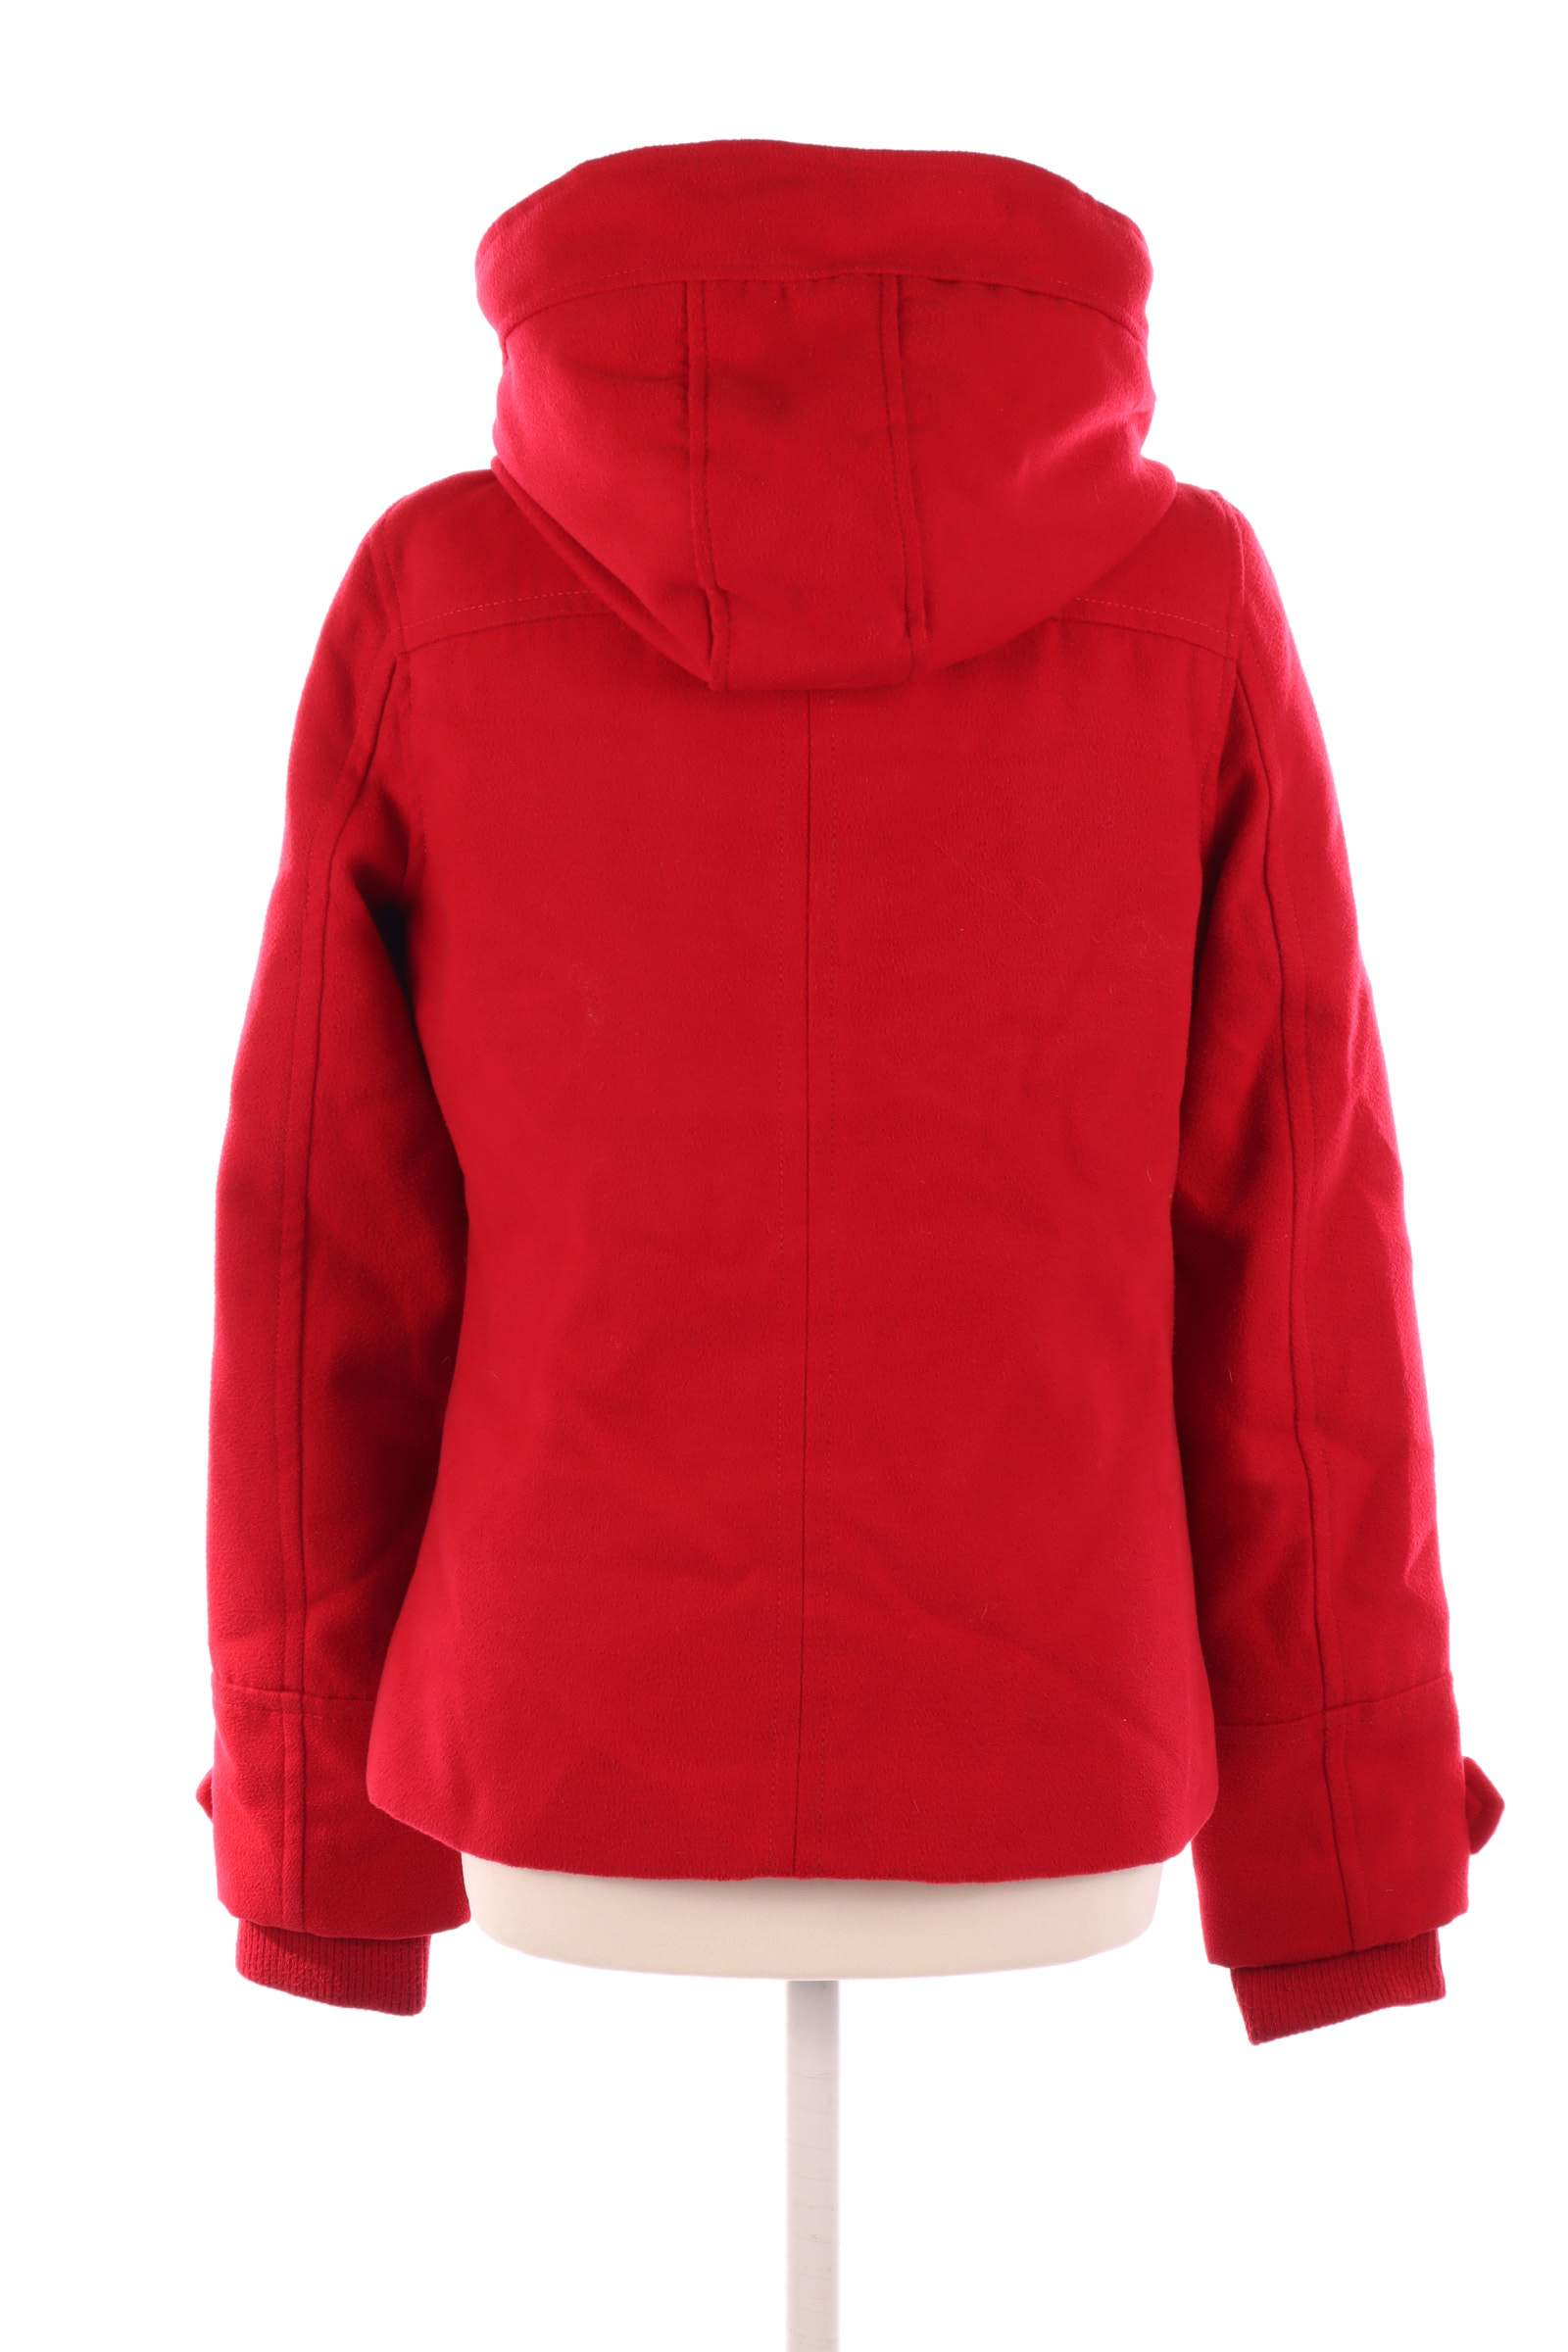 Cleillim Red Coat - upty.store